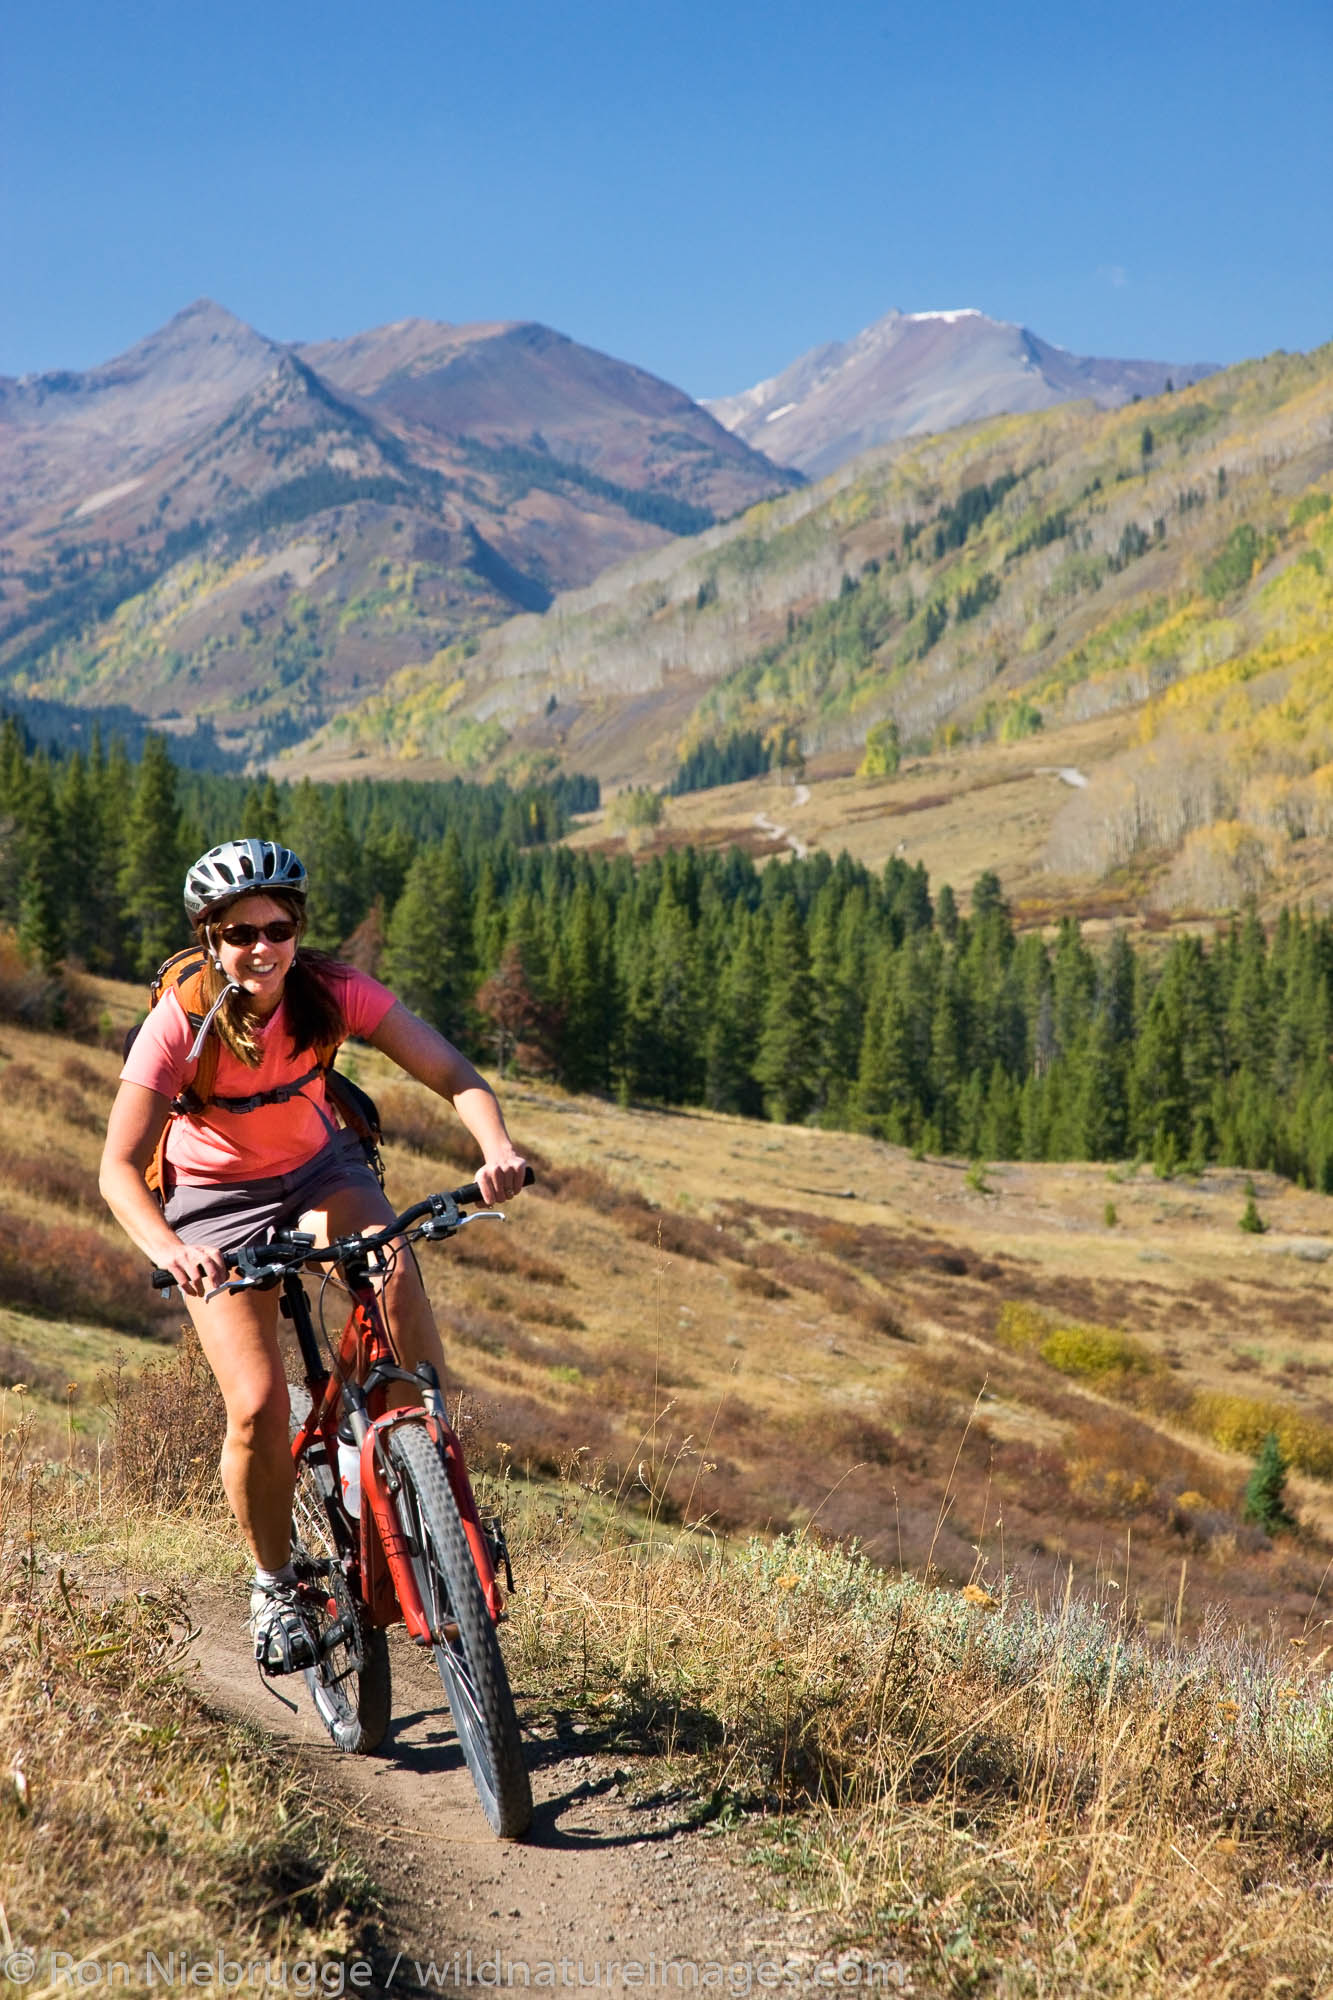 Mountain biking on the Upper and Lower Loop, Crested Butte, Colorado.  (model released)